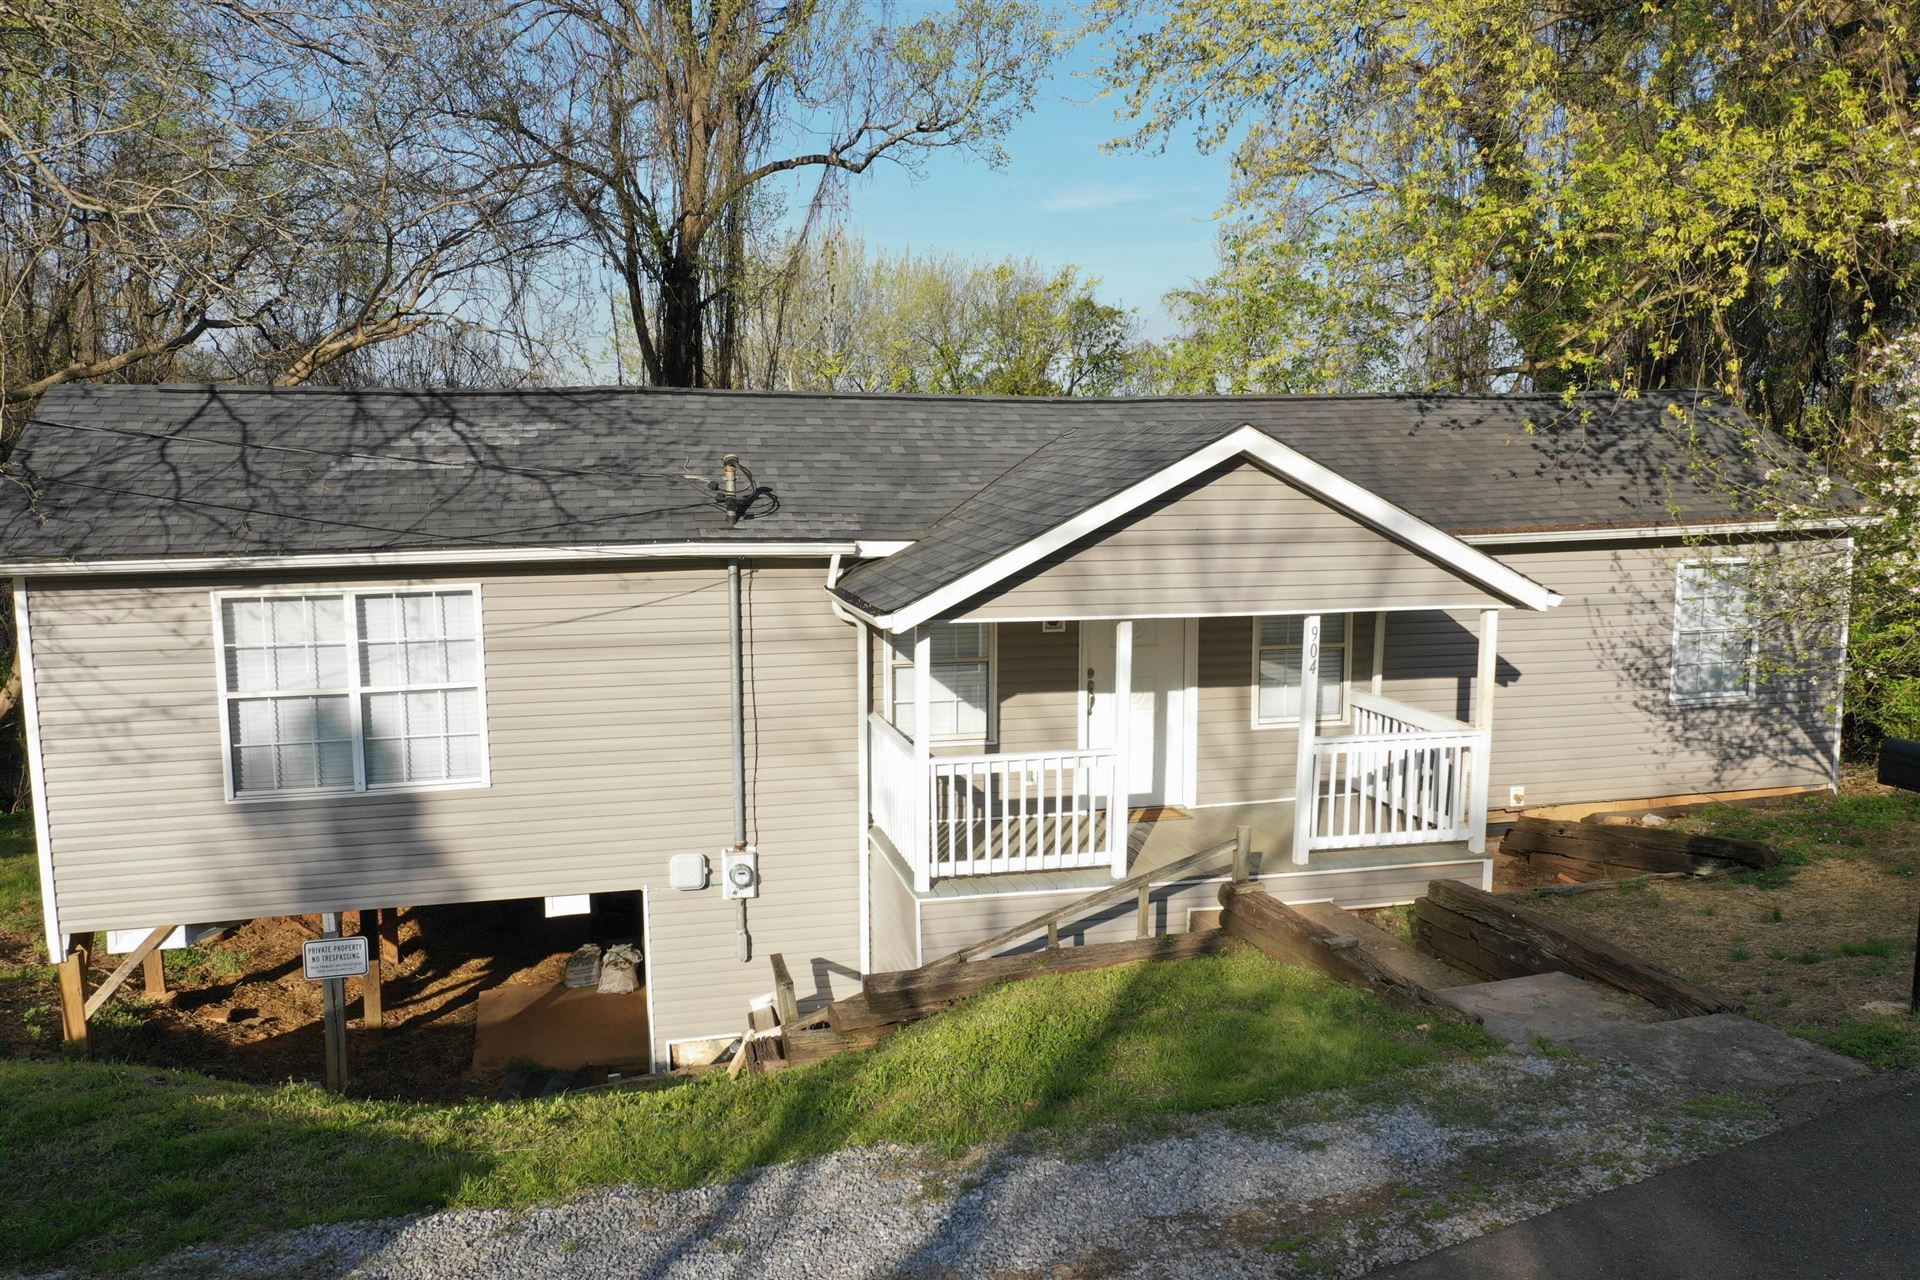 904 NW Sapphire Rd, Knoxville, TN 37919 - MLS#: 1148527